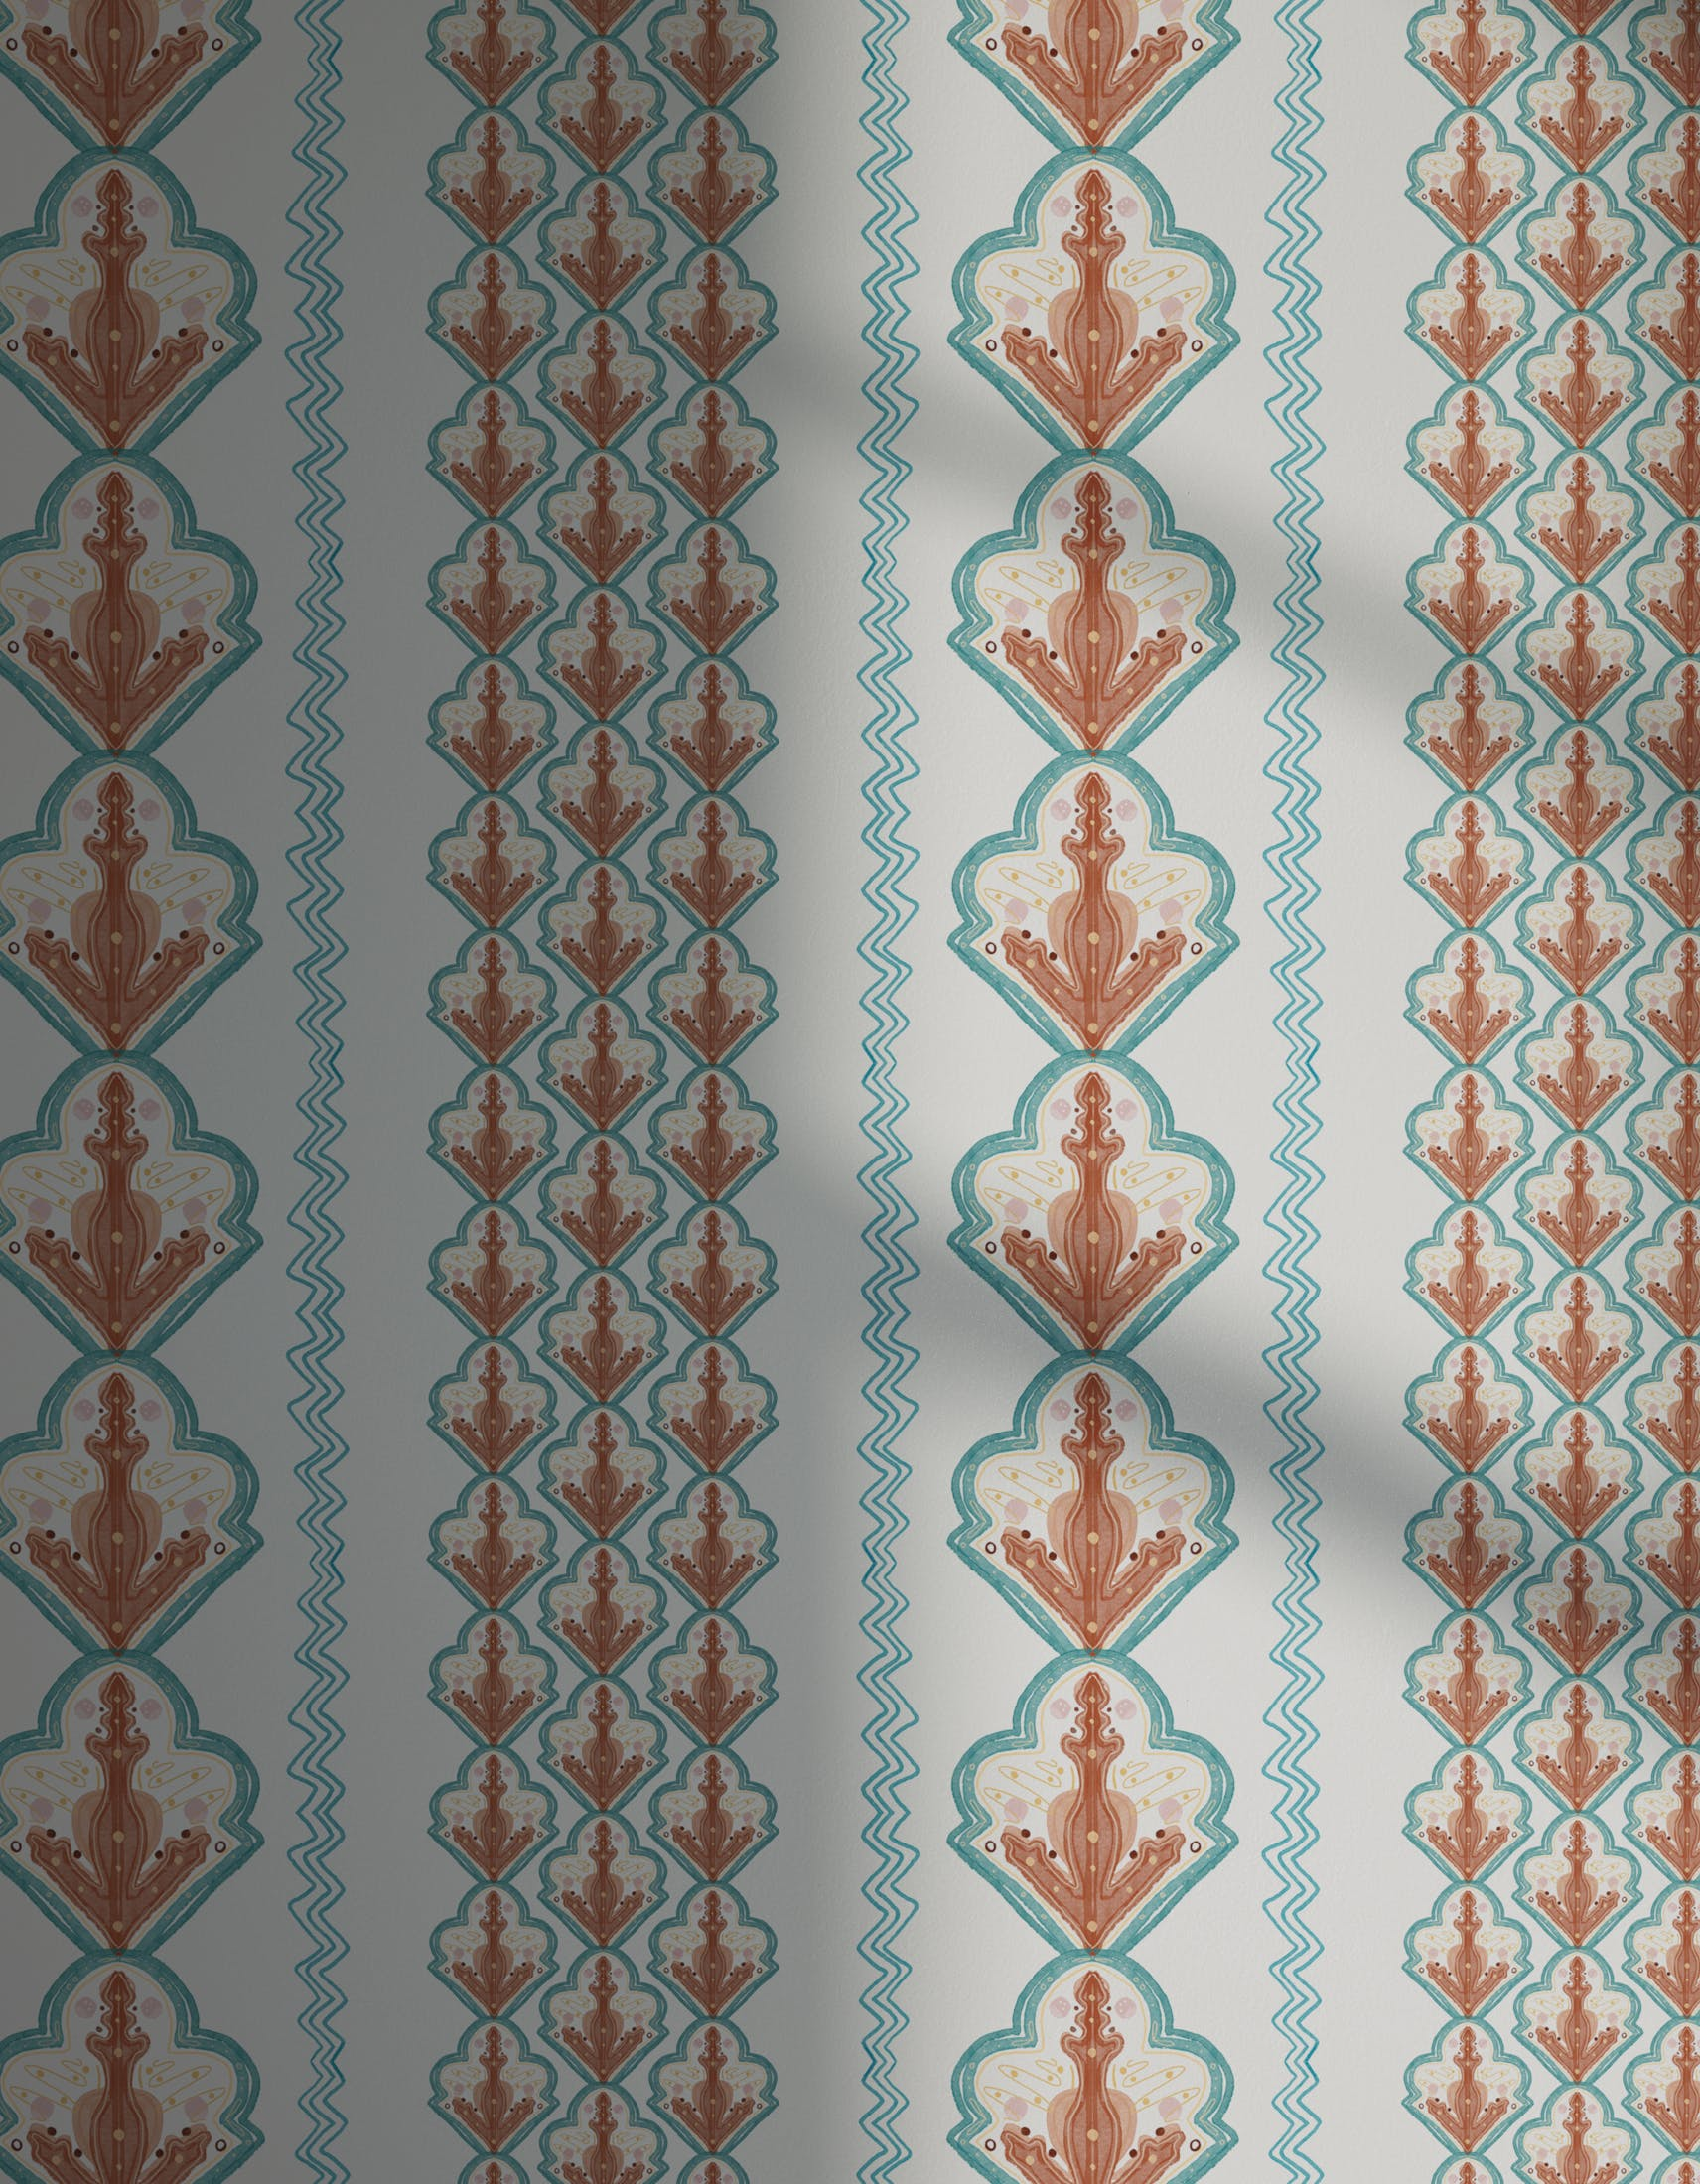 Lick x Lottie McDowell Travelling Tiles 02 orange patterned mosaic wallpaper with shadow